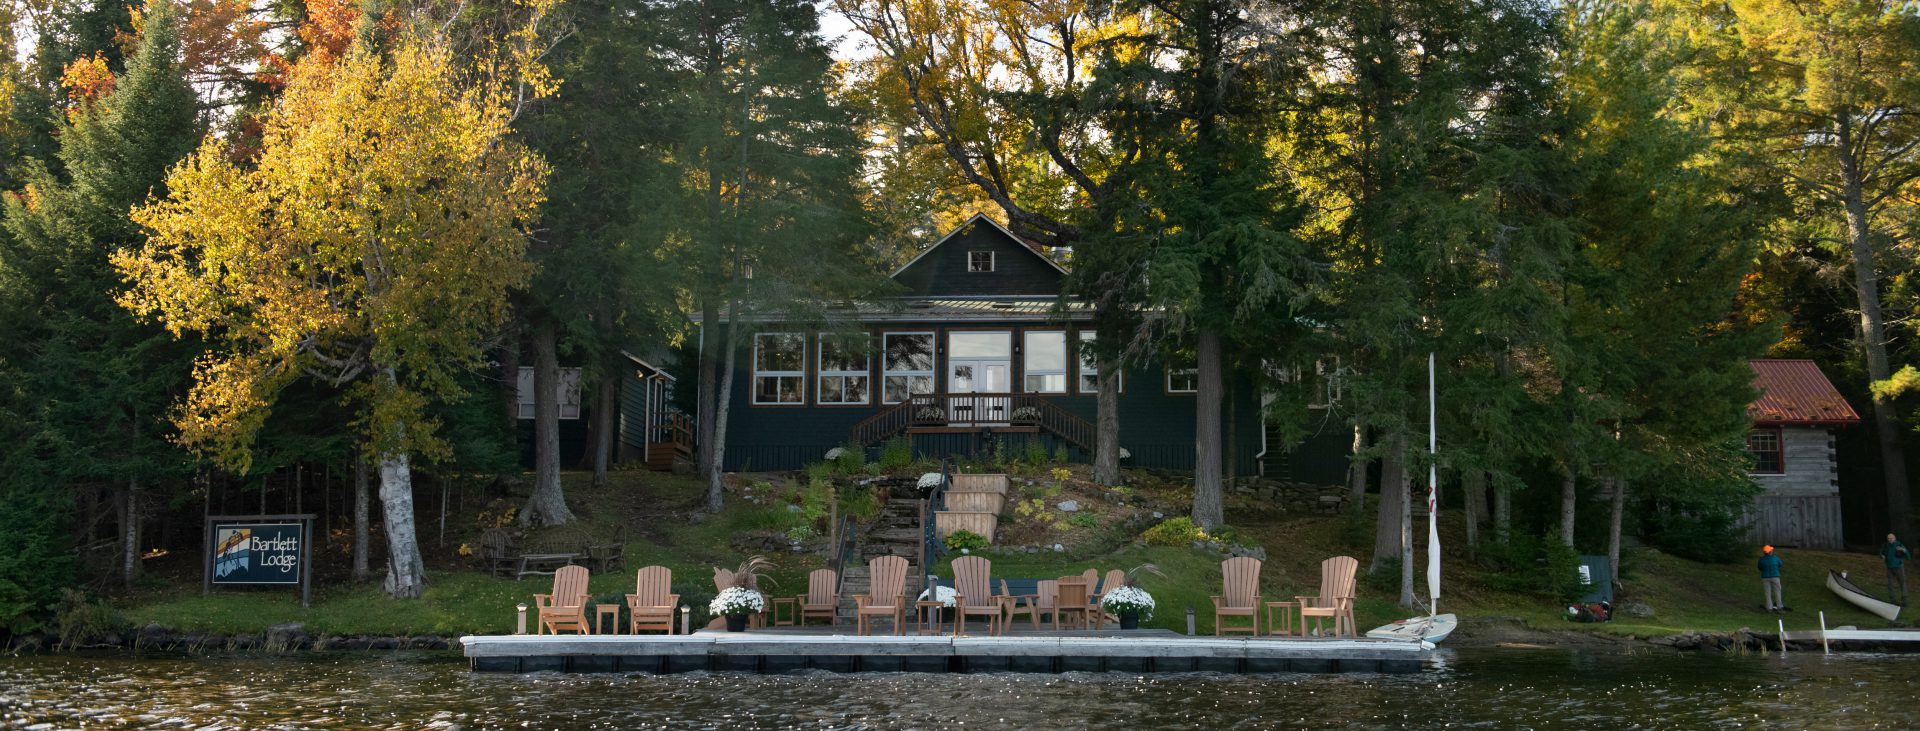 wide shot of the main dining cabin at Bartlett Lodge in the background with a dock and wooden deck chairs in the mid ground and water in the foreground